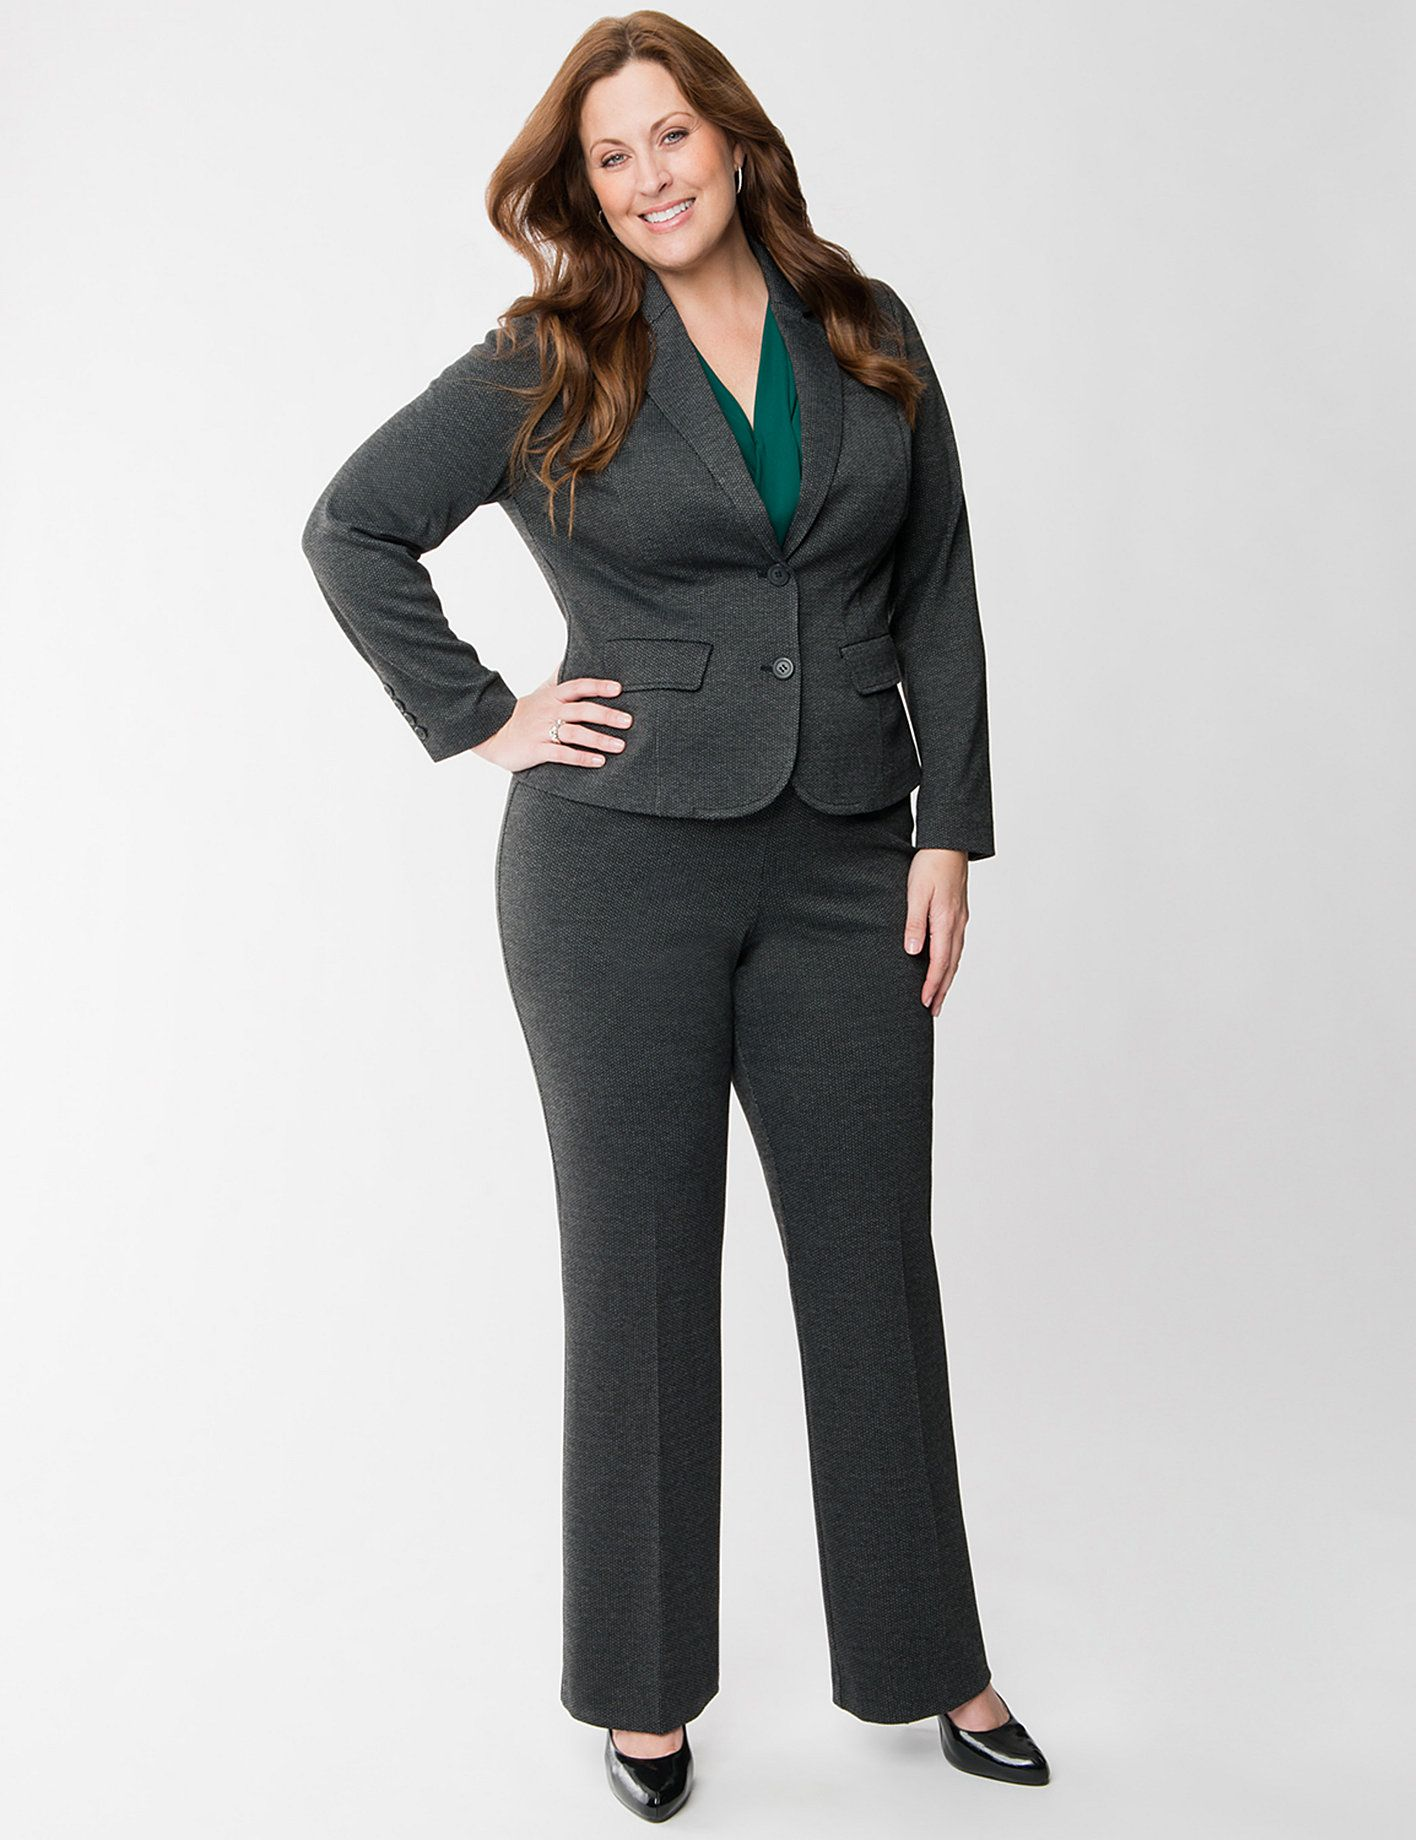 a5f4b43d1b70 Lane Bryant...grey suit | I wish I had style... in 2019 | Plus size ...